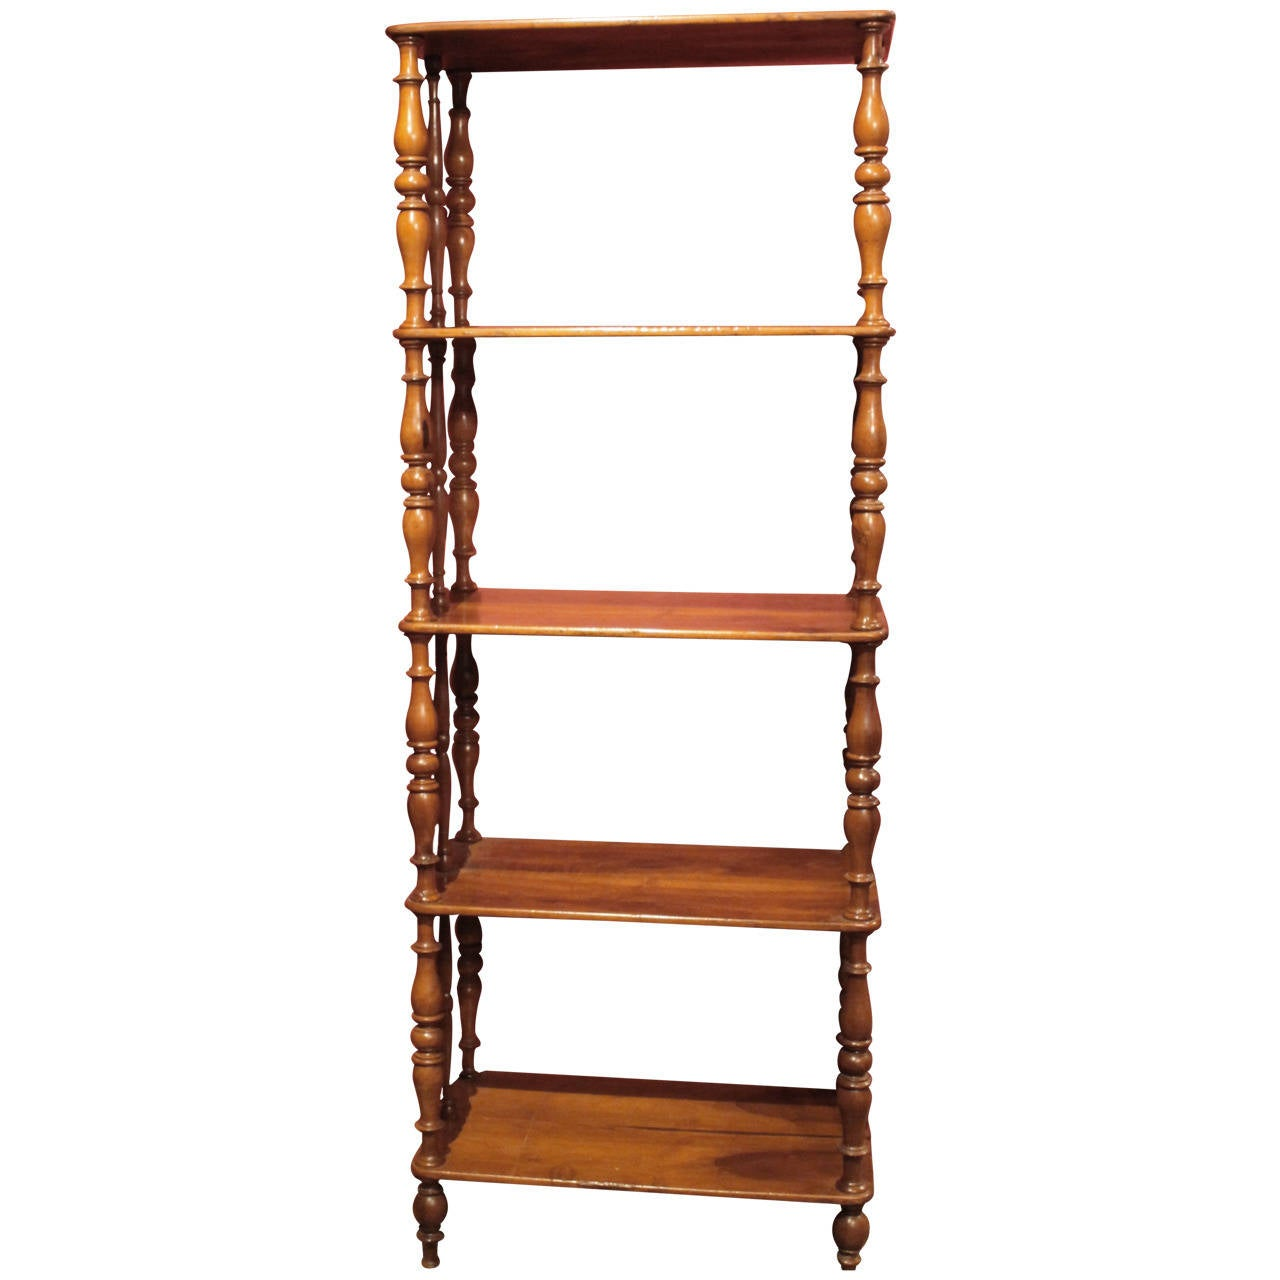 Italian 19th Century Rustic Walnut Wood Étagère or Bookcase For Sale